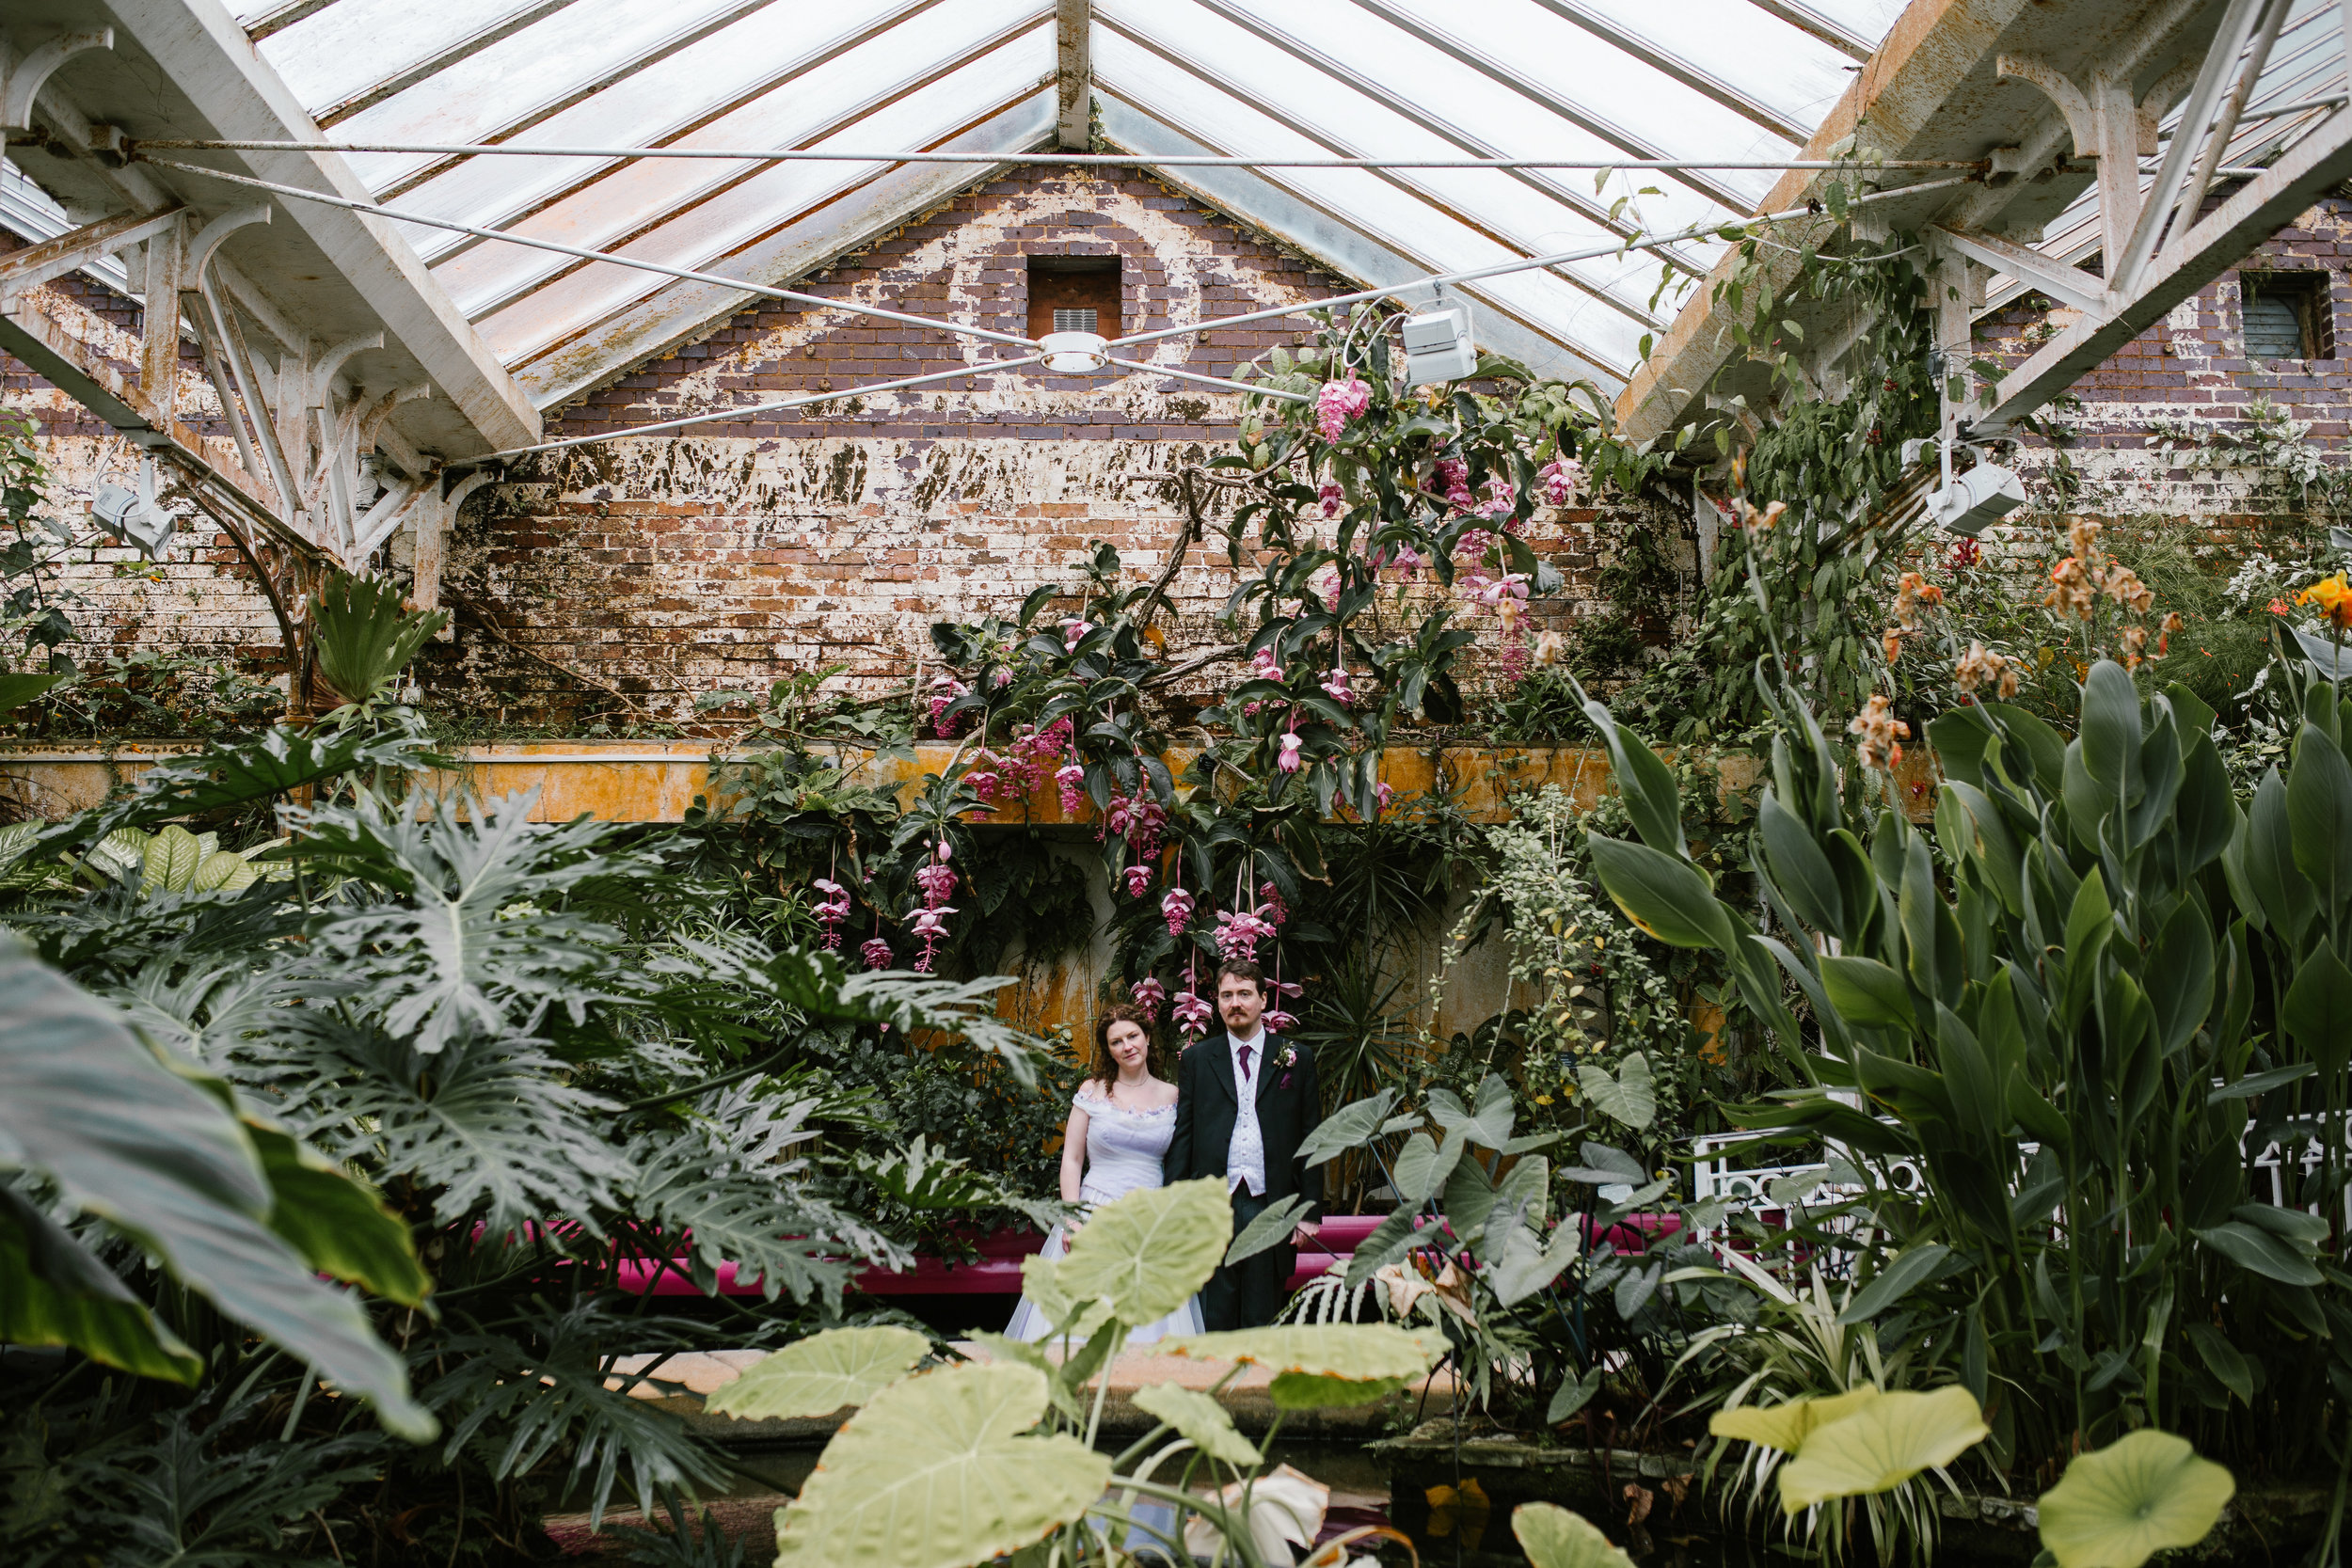 newlyweds stand amongst the flowers in a greenhouse at the botanical gardens in birmingham after their wedding ceremony, the bride wears a purple wedding dress- birmingham wedding photography